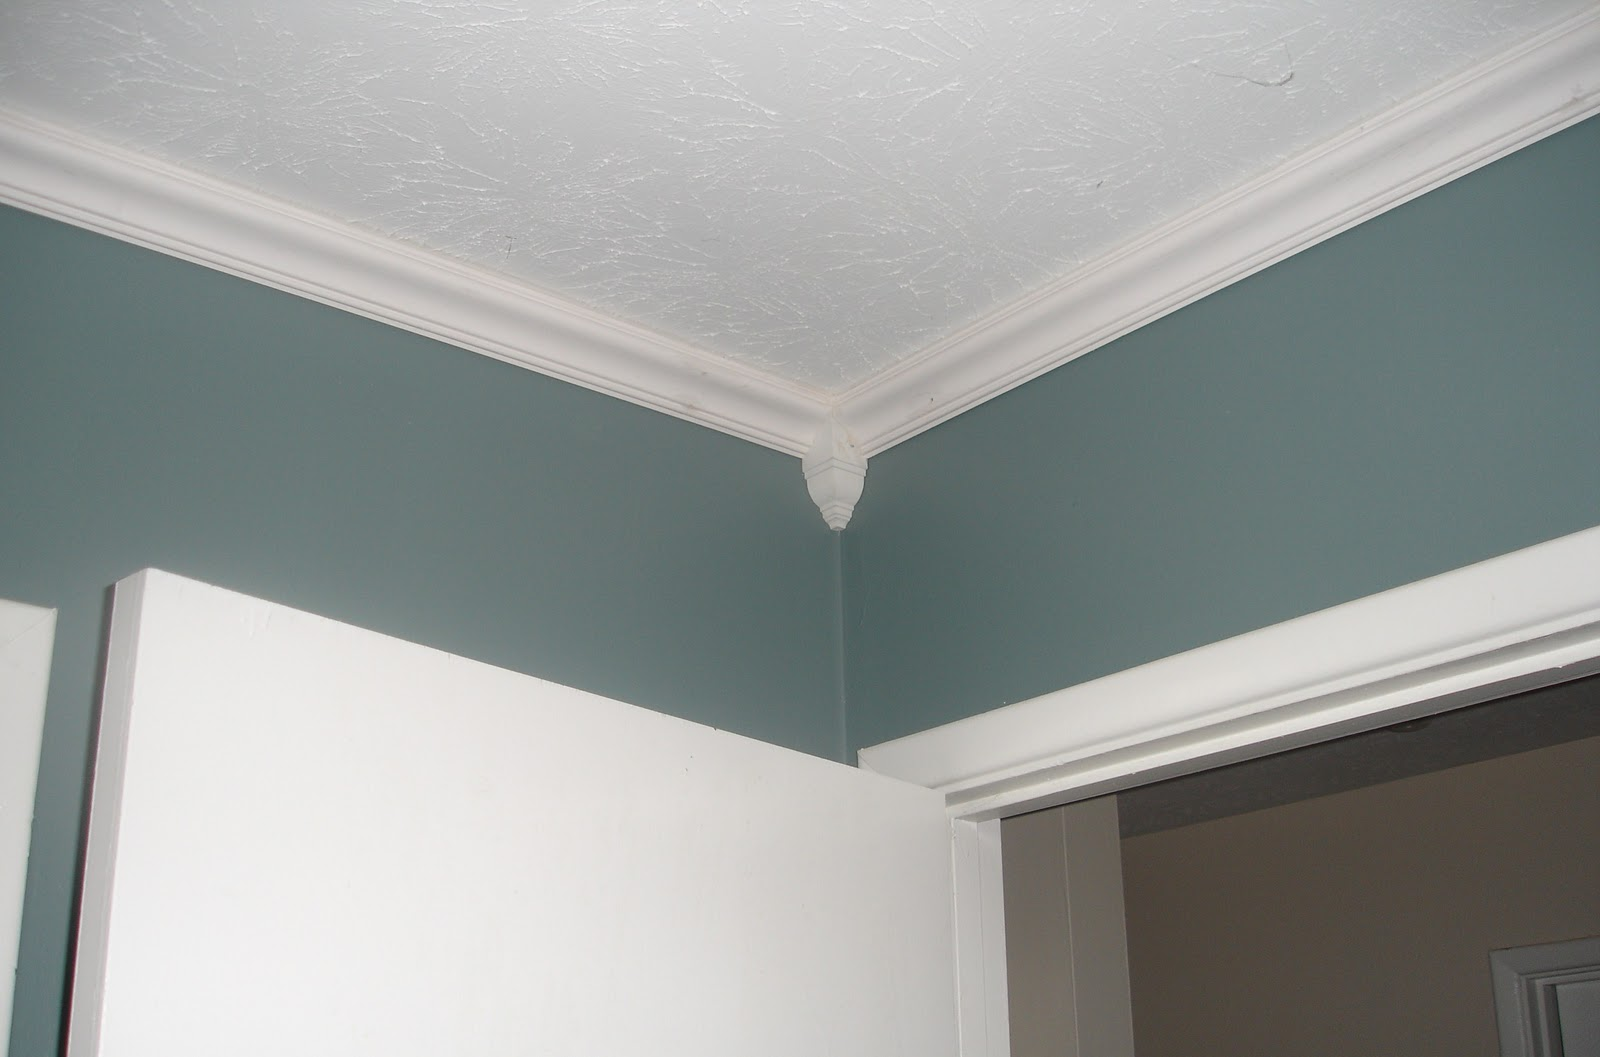 Bedroom Ceiling Moulding Don 39t Disturb This Groove Master Bedroom Crown Molding